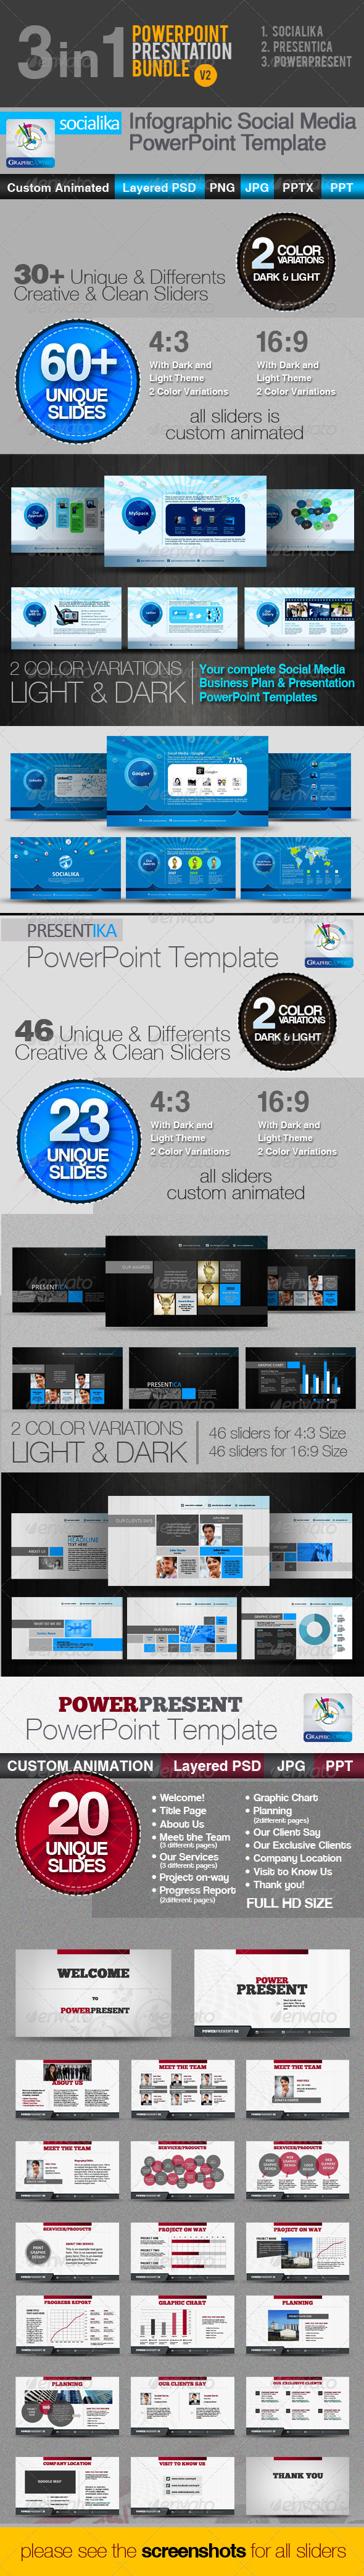 GraphicRiver 3in1 PowerPoint Templates Bundle v2 3658020